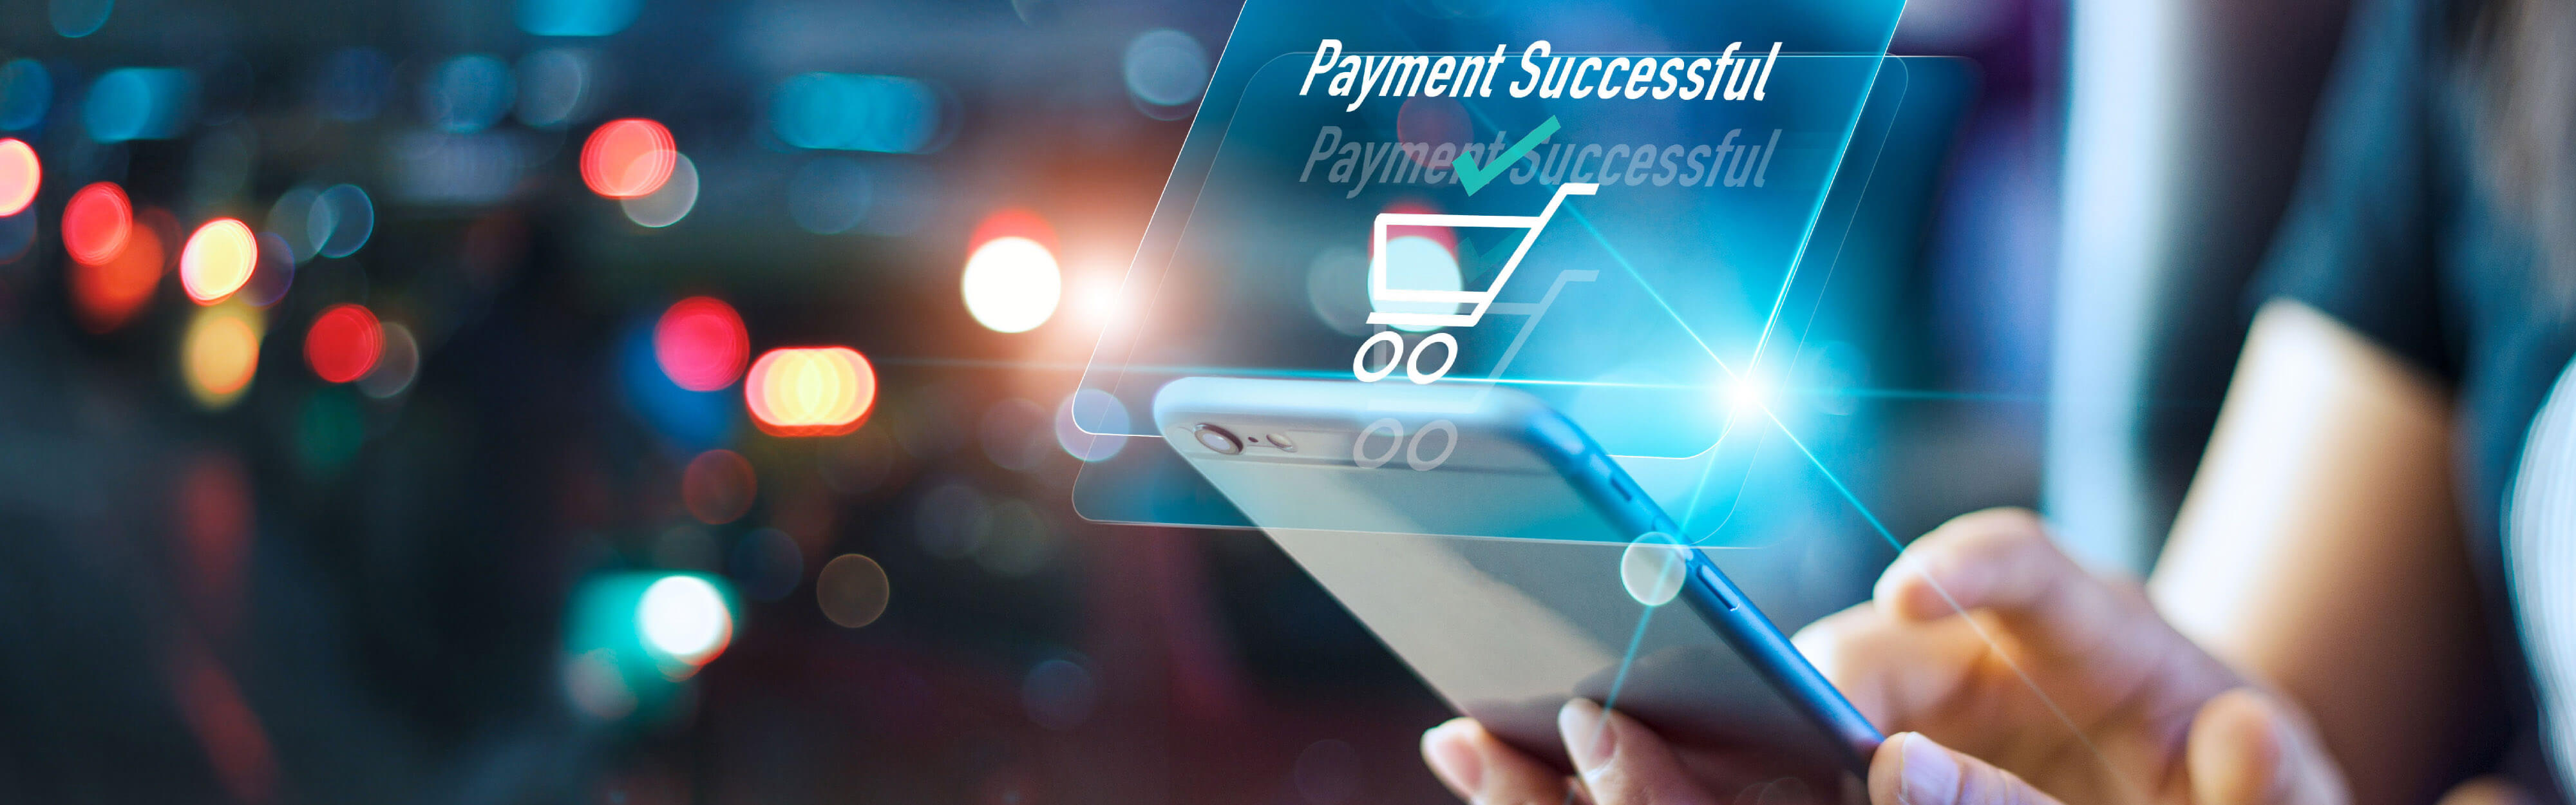 Payment Investigations for Cross Border Payments across the Banking Industry